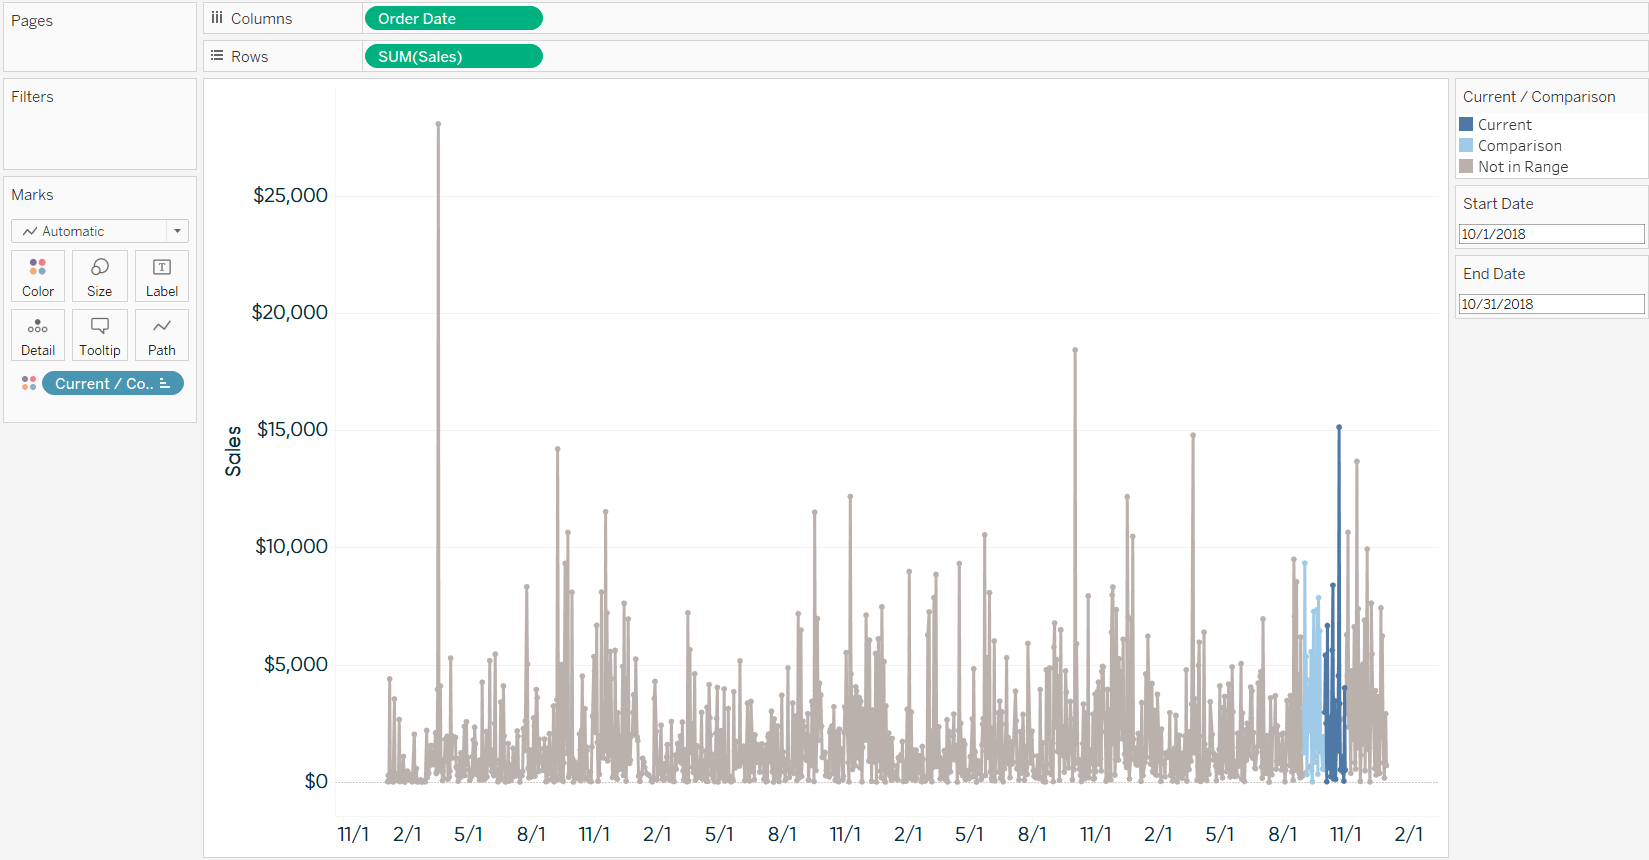 How to Normalize Current and Prior Dates on the Same Axis